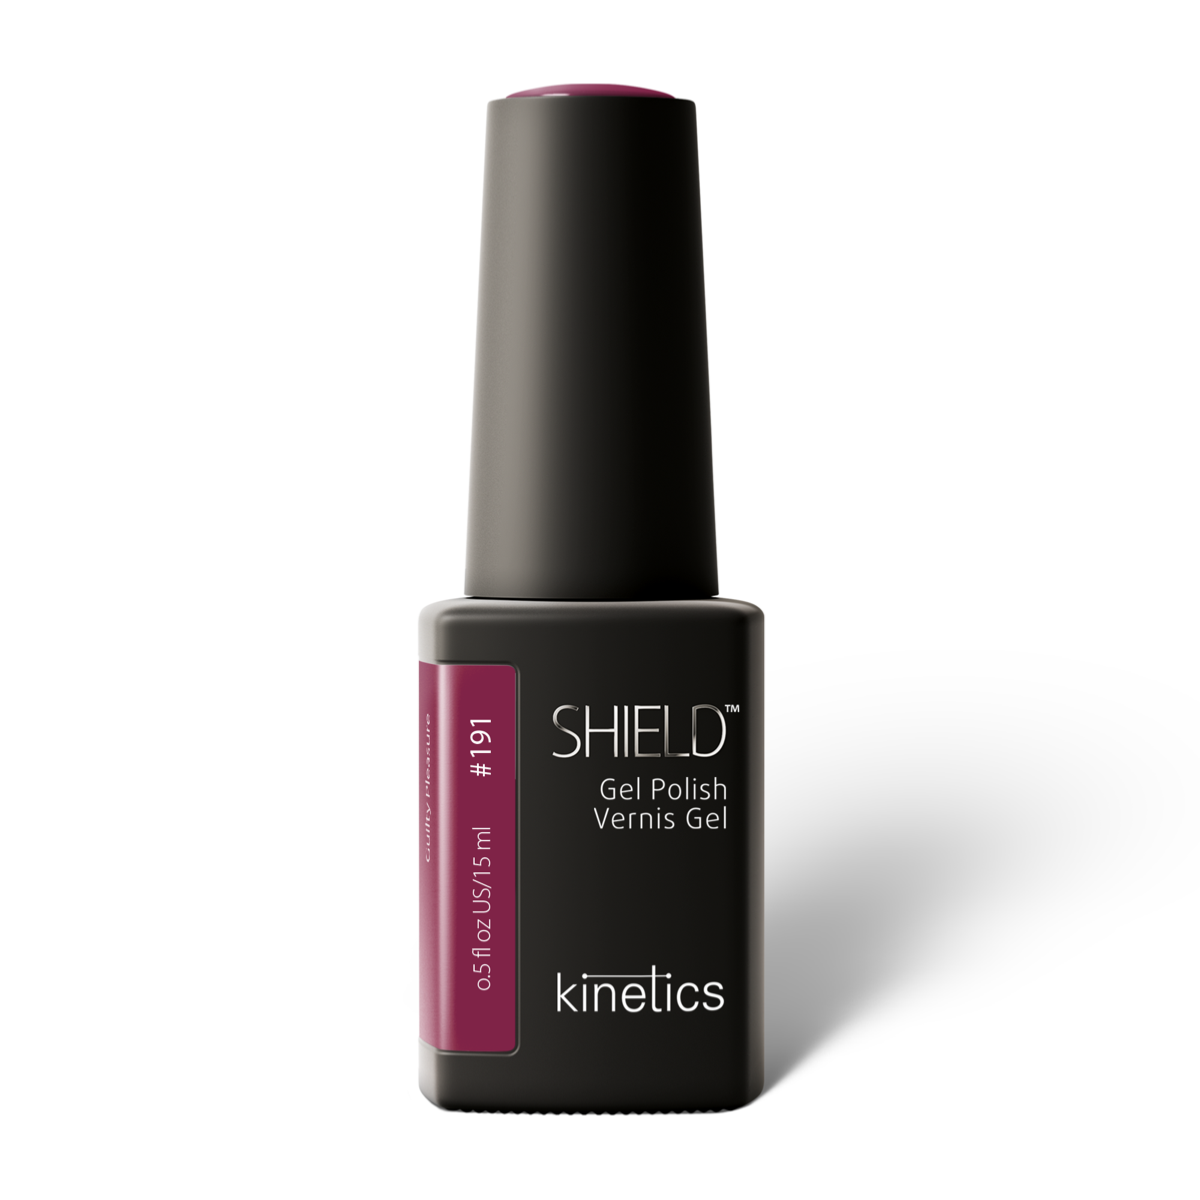 Vernis permanent SHIELD  Guilty pleasure 15ml #191 - Kinetics